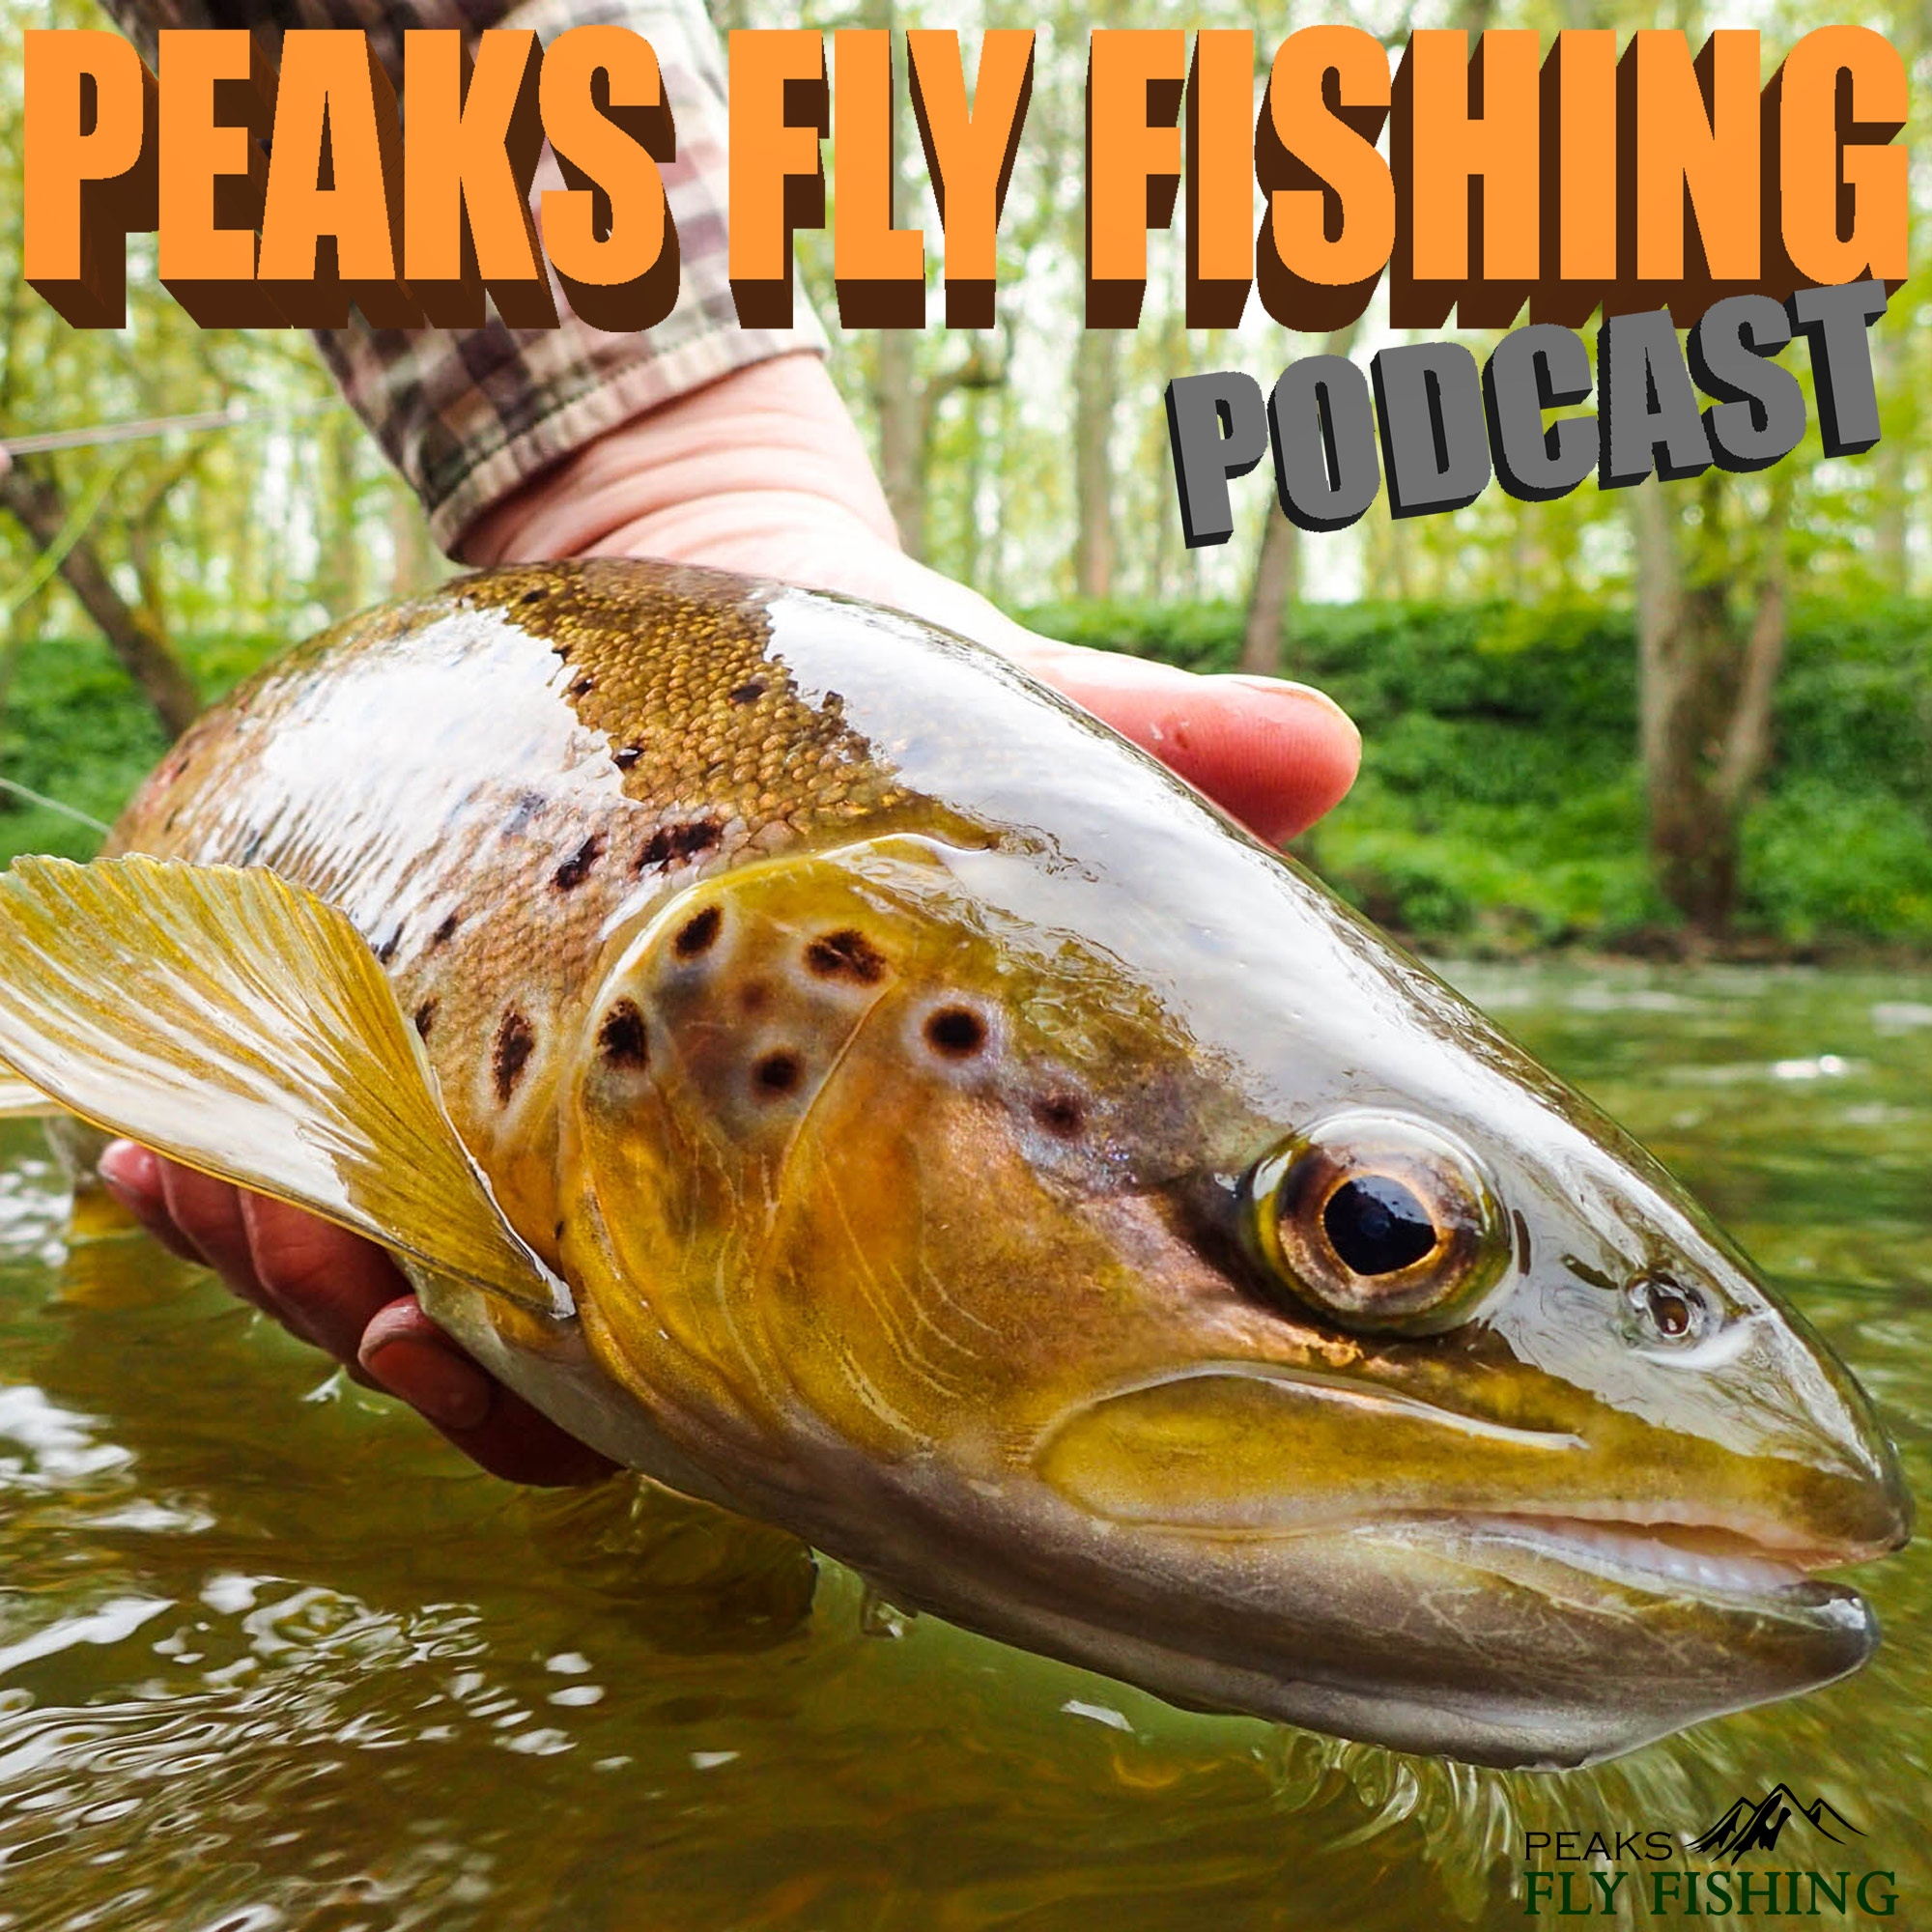 Peaks Fly Fishing Podcast show art